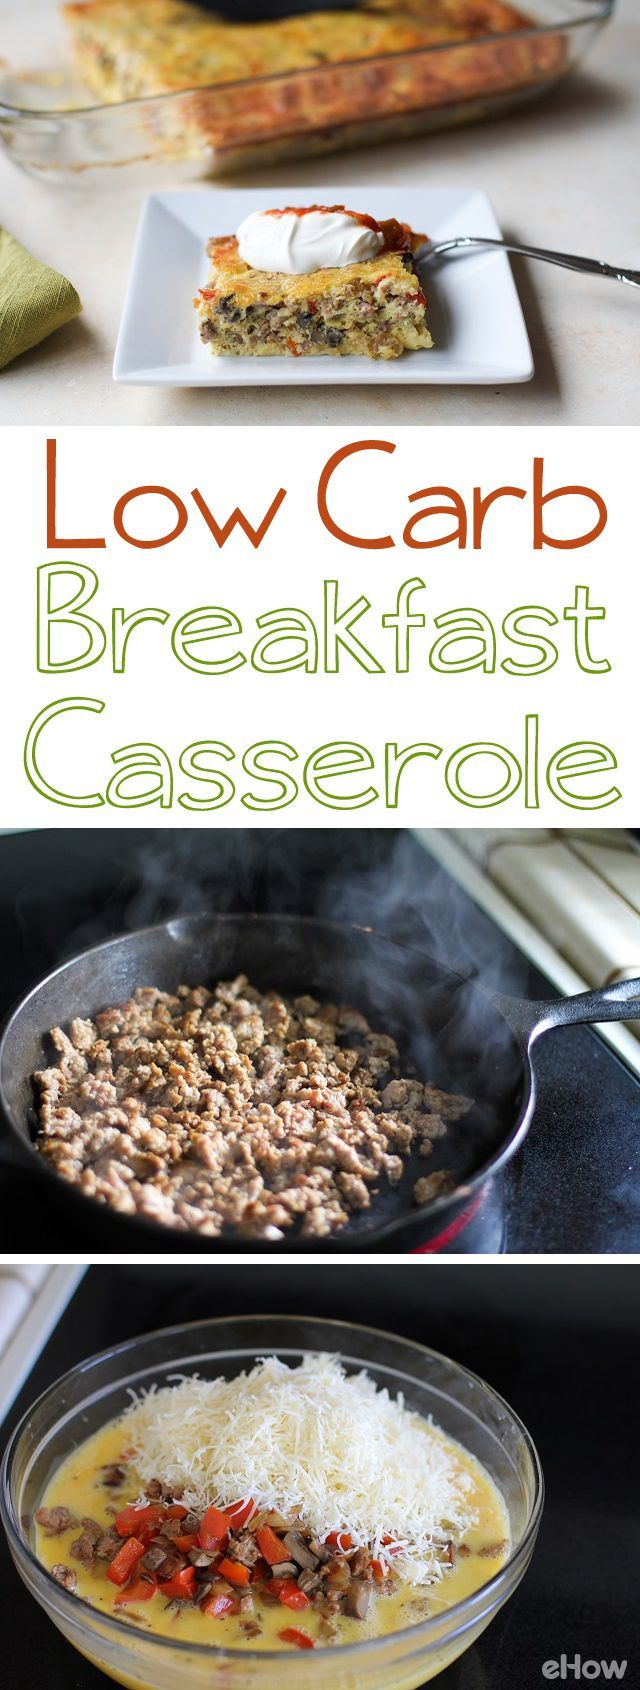 How to use water with lemon for weight loss ehow - Cut Down On Carbs With This Tasty Breakfast Casserole Recipe